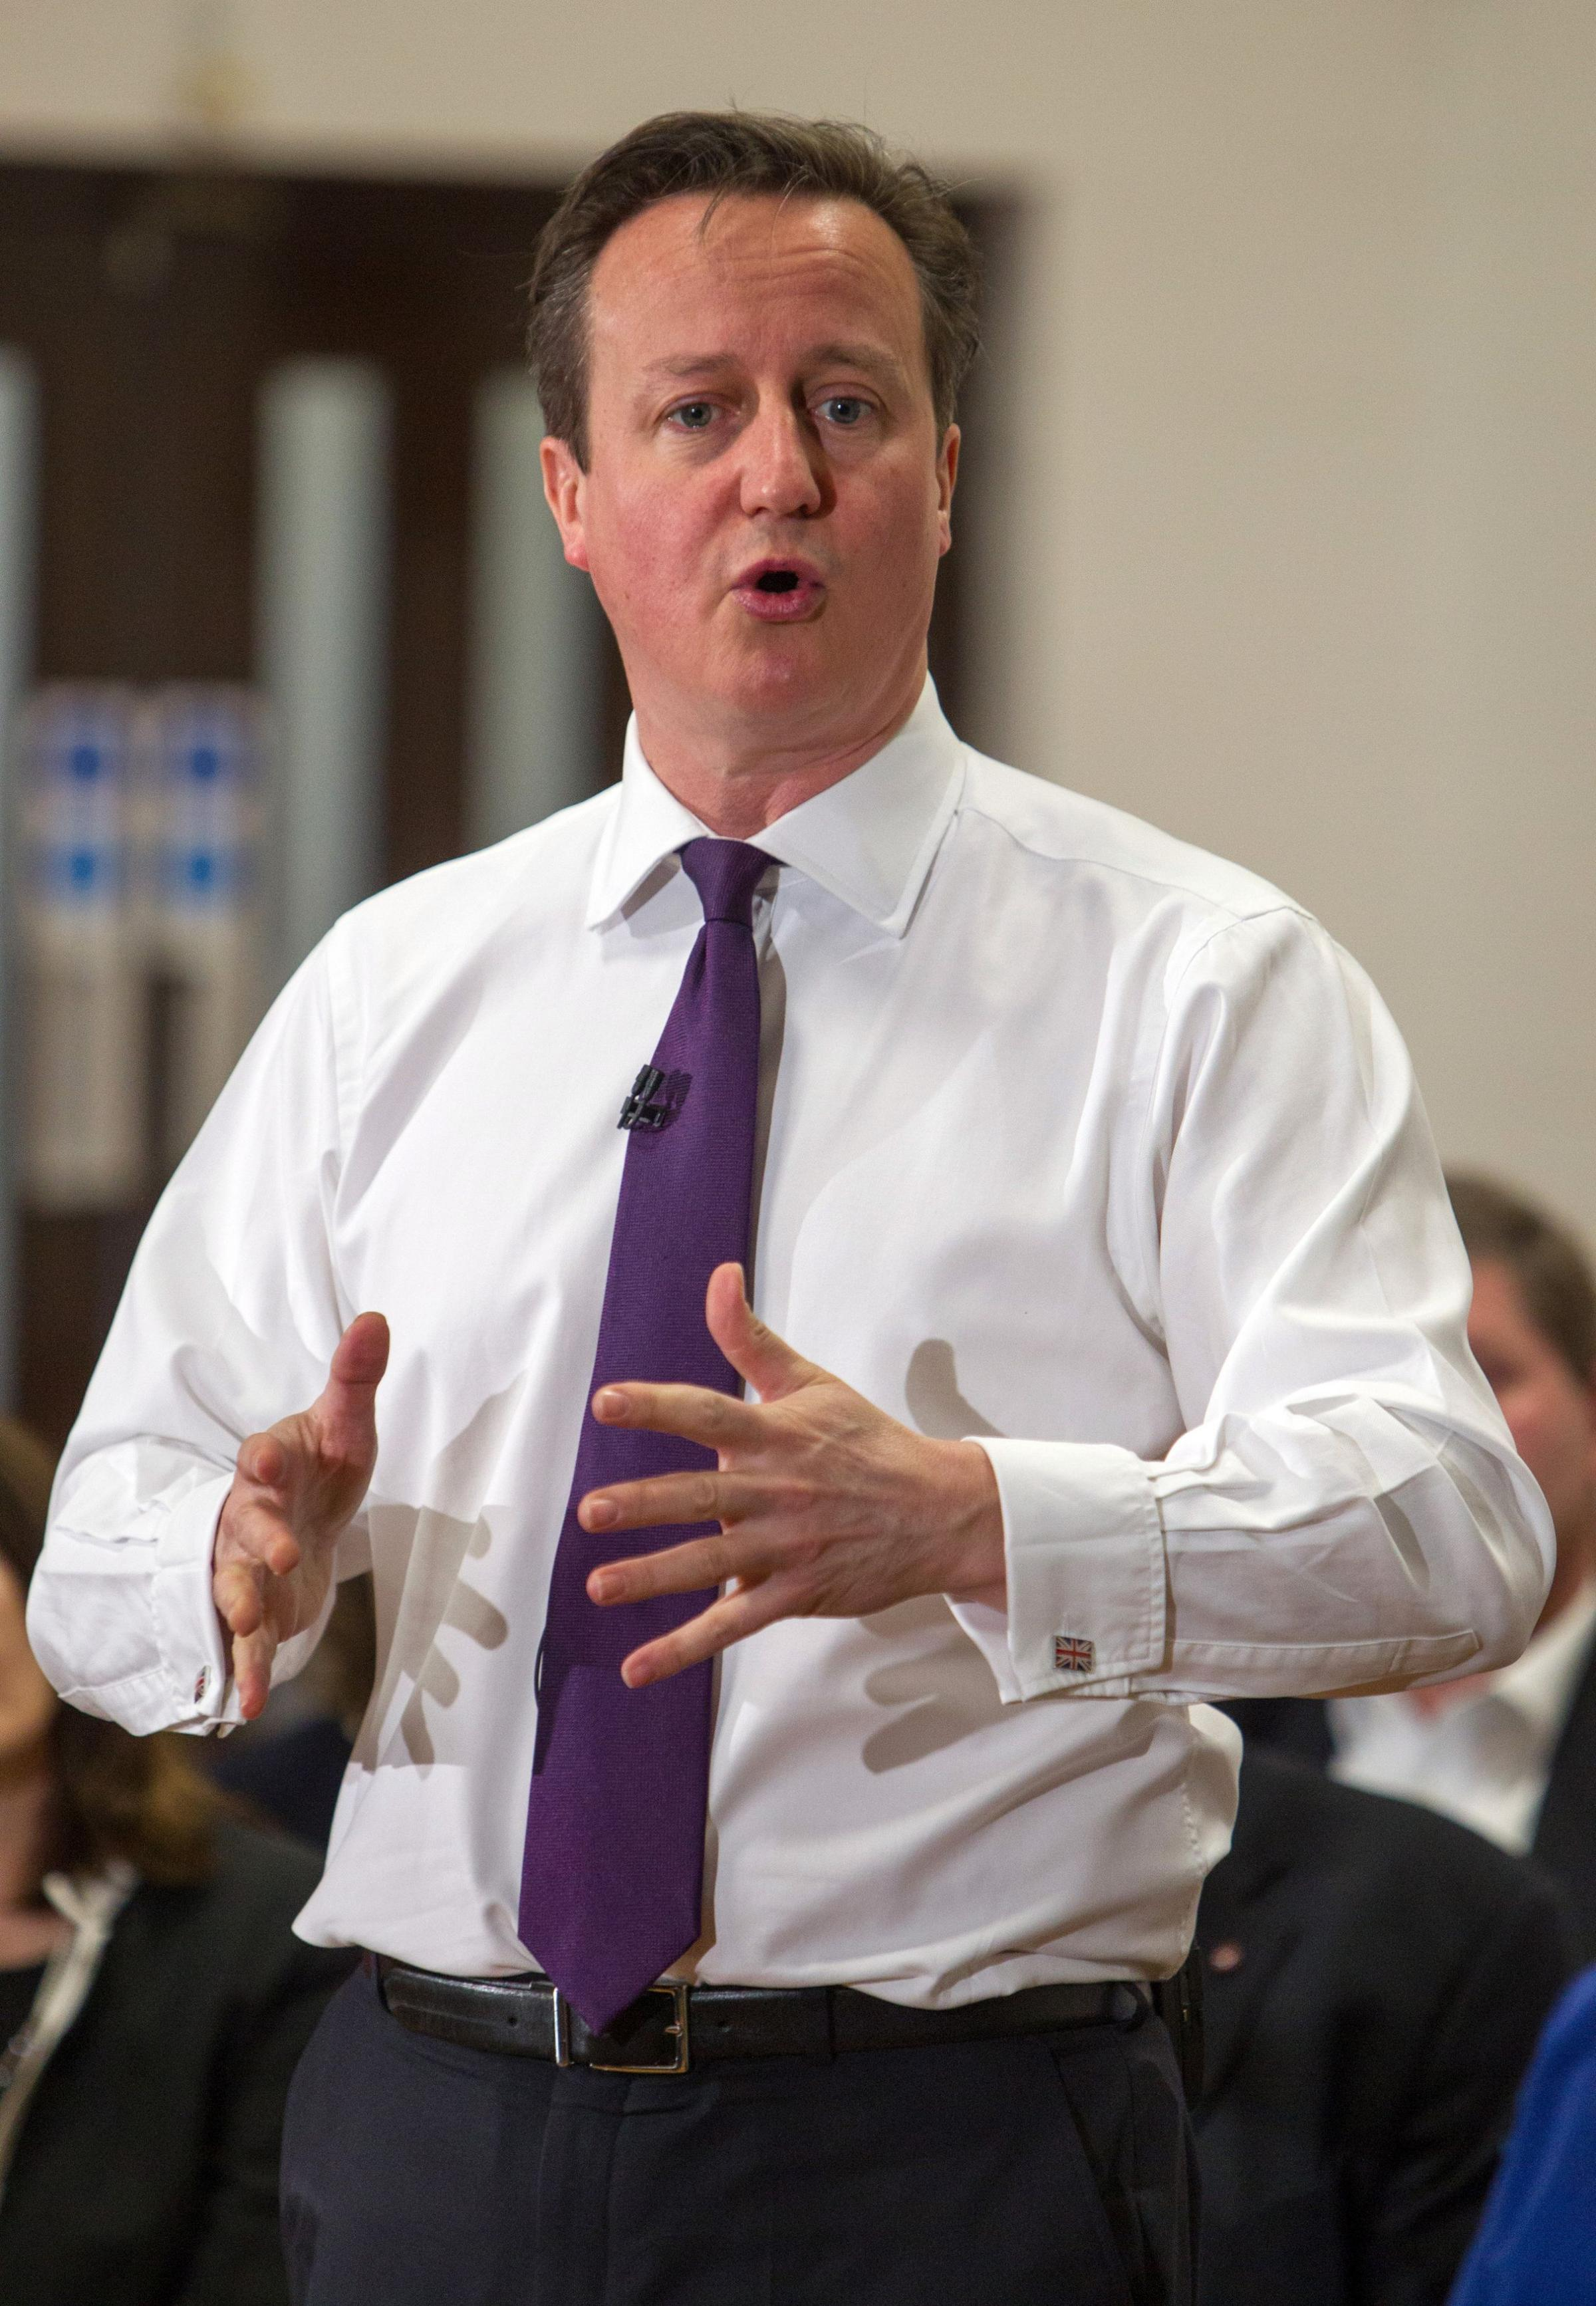 PM 'right' to demand increase in patriotism say East Lancs politicians